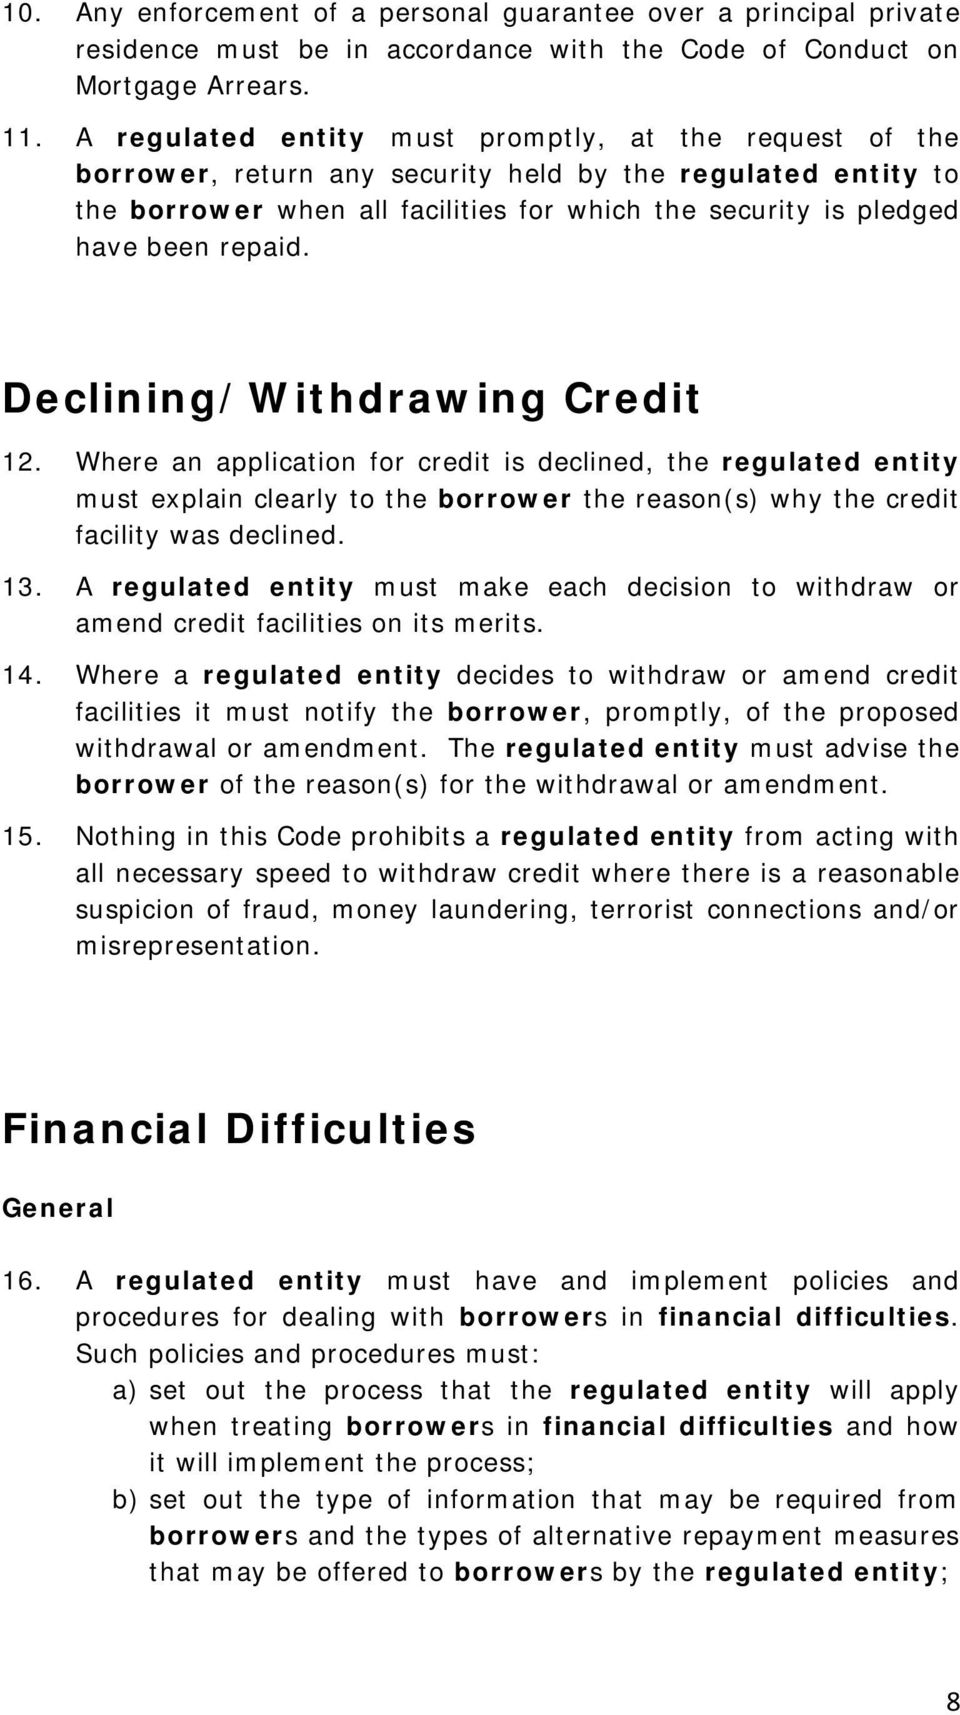 repaid. Declining/Withdrawing Credit 12. Where an application for credit is declined, the regulated entity must explain clearly to the borrower the reason(s) why the credit facility was declined. 13.